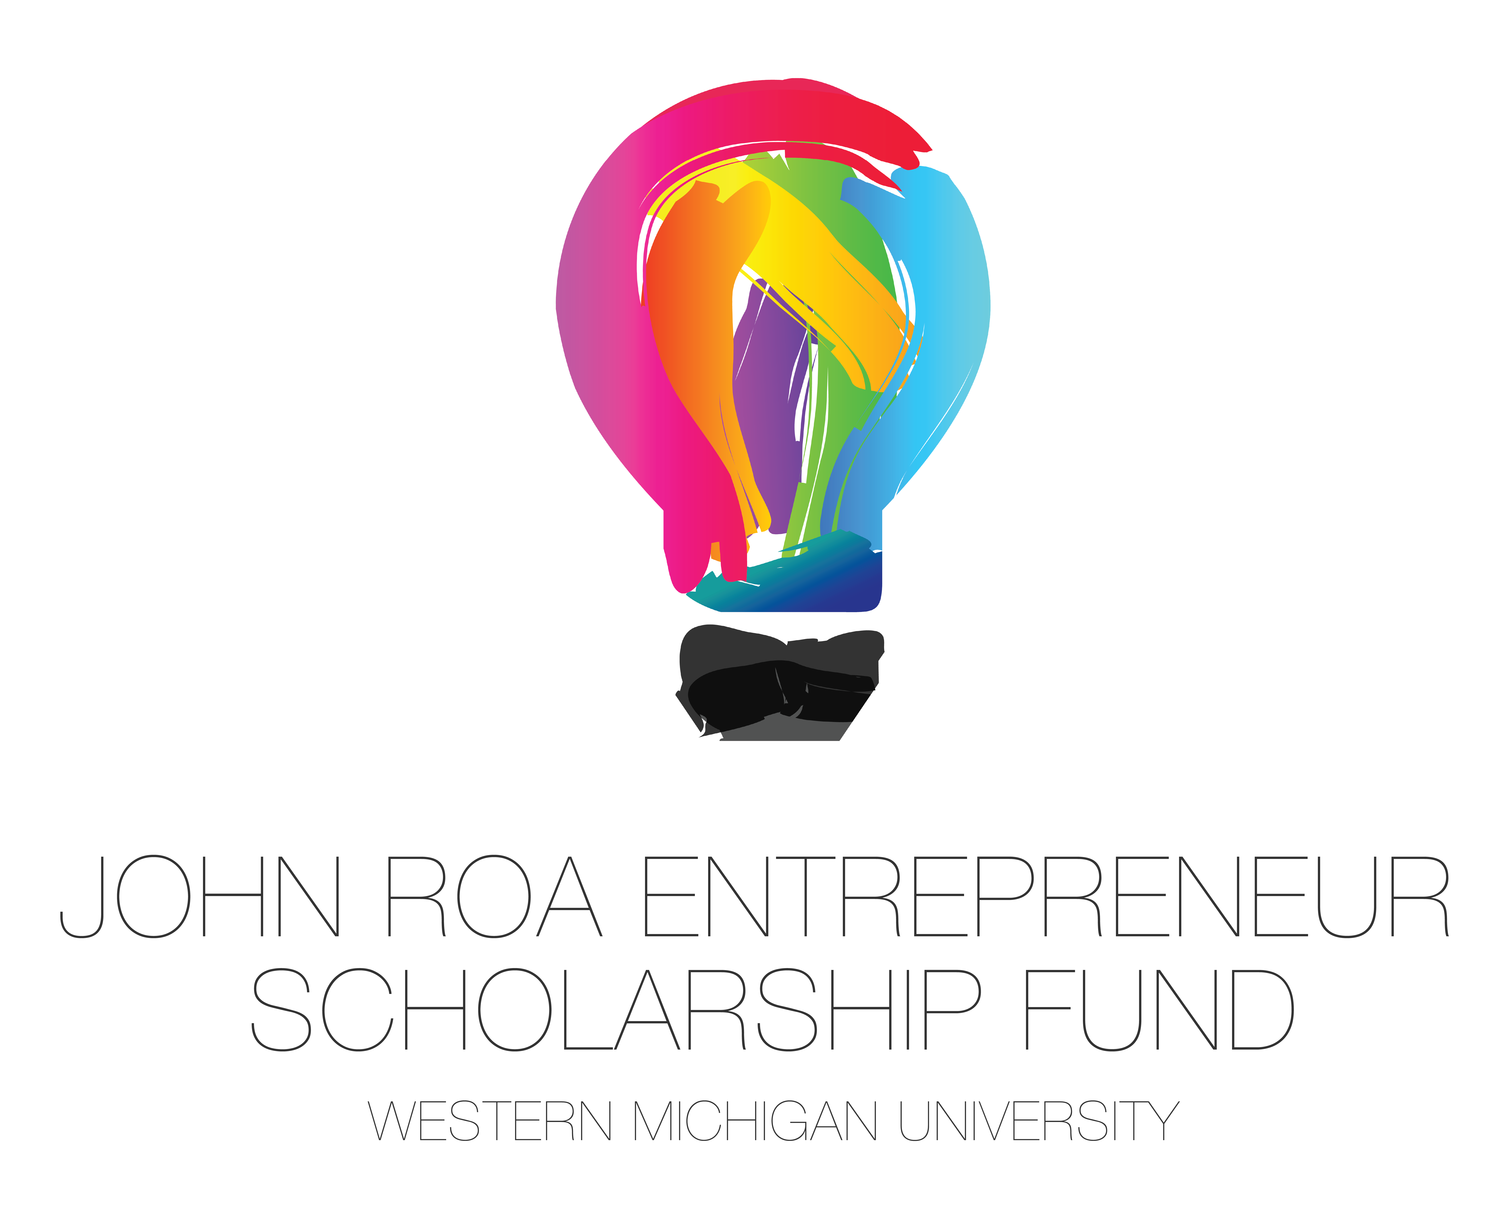 💡 - The John Roa Entrepreneur Scholarship on behalf of Western Michigan University.This scholarship was created to give financial assistance to one student per year who shows outsized entrepreneurial potential, but may not qualify for other traditional scholarships with high GPA requirements (as was the case with John Roa).From Mr. Roa's letter:I was a really, really bad student. At least in the traditional sense. I struggled to learn in the standard academic format and from middle school through my college degrees, I barely squeaked through. In fact, I think my graduating GPA was about as close to a 2.0 as you can get.In retrospect however, I gained a wide range of skills and lessons from college that aided in my entrepreneurial success—from networking and sales to math and finance. My parents' influence and support kept me in school. Although, when I graduated, I still had a stack of student loans that loomed over me.The goal of this scholarship is to find a couple students a year that are entrepreneurially minded, but may be struggling in the traditional academic sense and therefore unable to qualify for any traditional scholarships. Rather than dropping out, I want to aide them in finishing their pursuits.This scholarship will have no GPA requirements and will require a student to prove their entrepreneurial prowess through relevant tasks like a TED-style pitch or business plan, rather than long form essays or meetings with boards.Education is critical, and this is hopefully the first of many ways I want to do my part in creating a better future for the next generation.